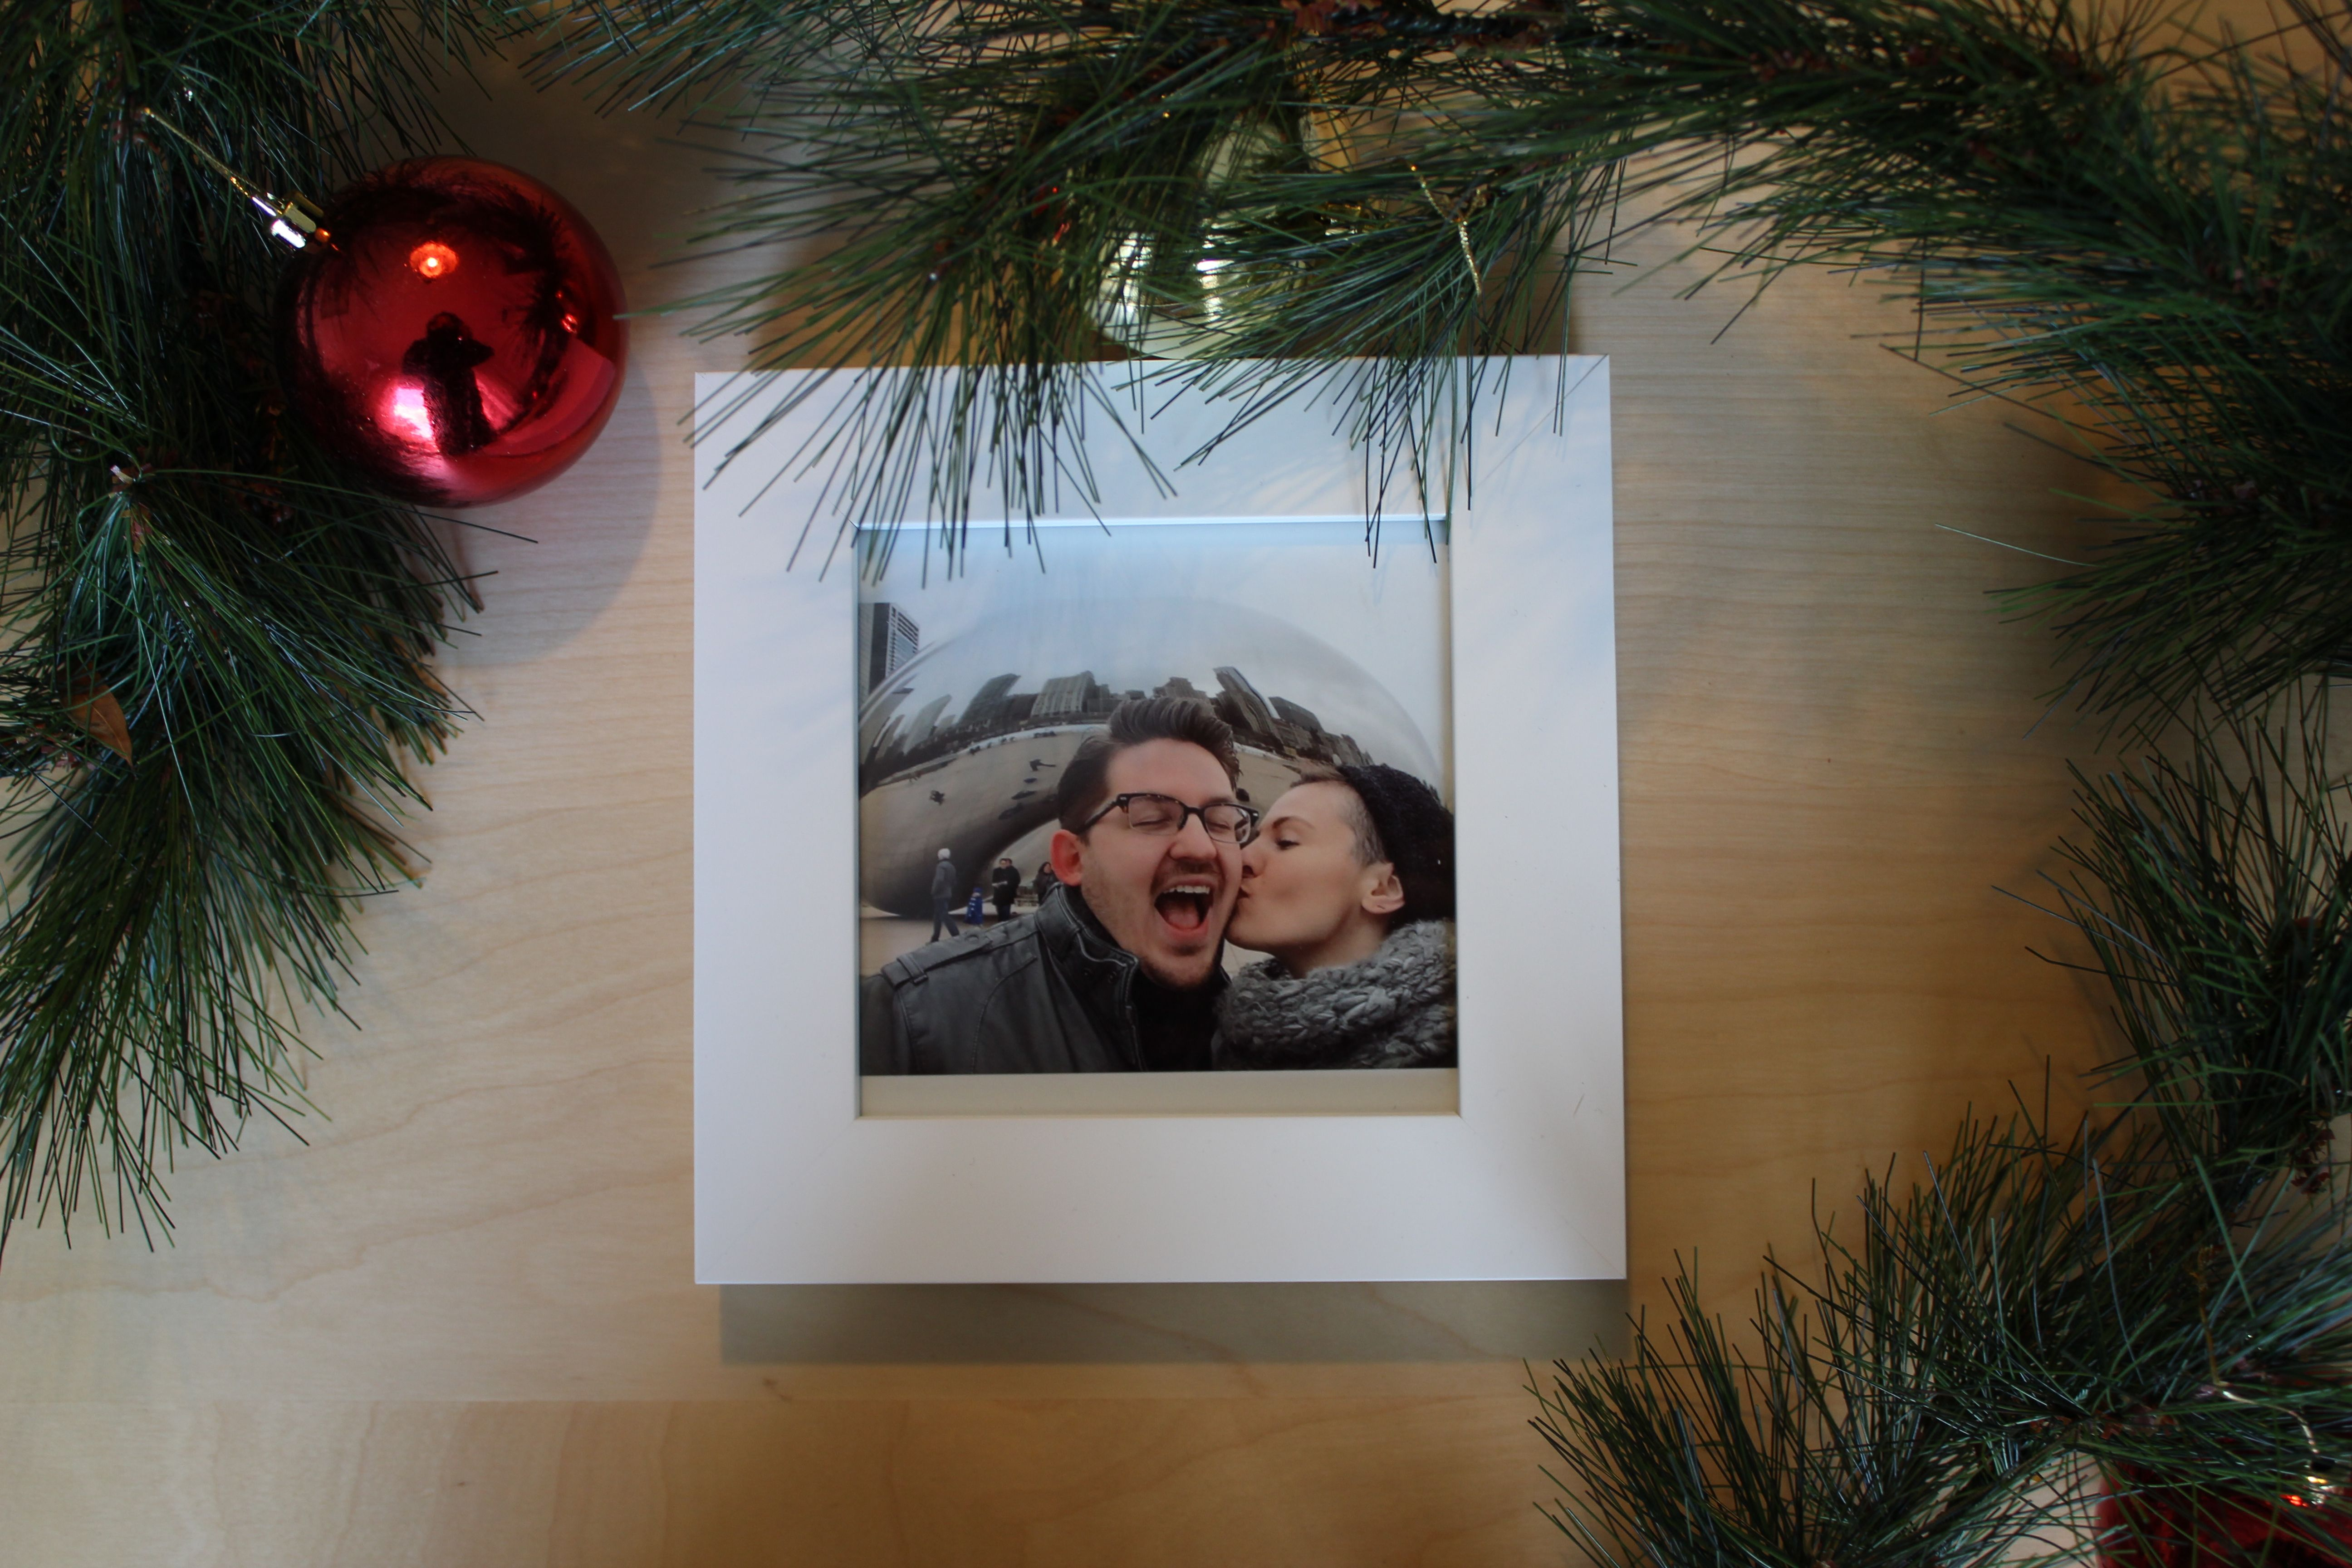 Custom Holiday Gifts with Framebridge